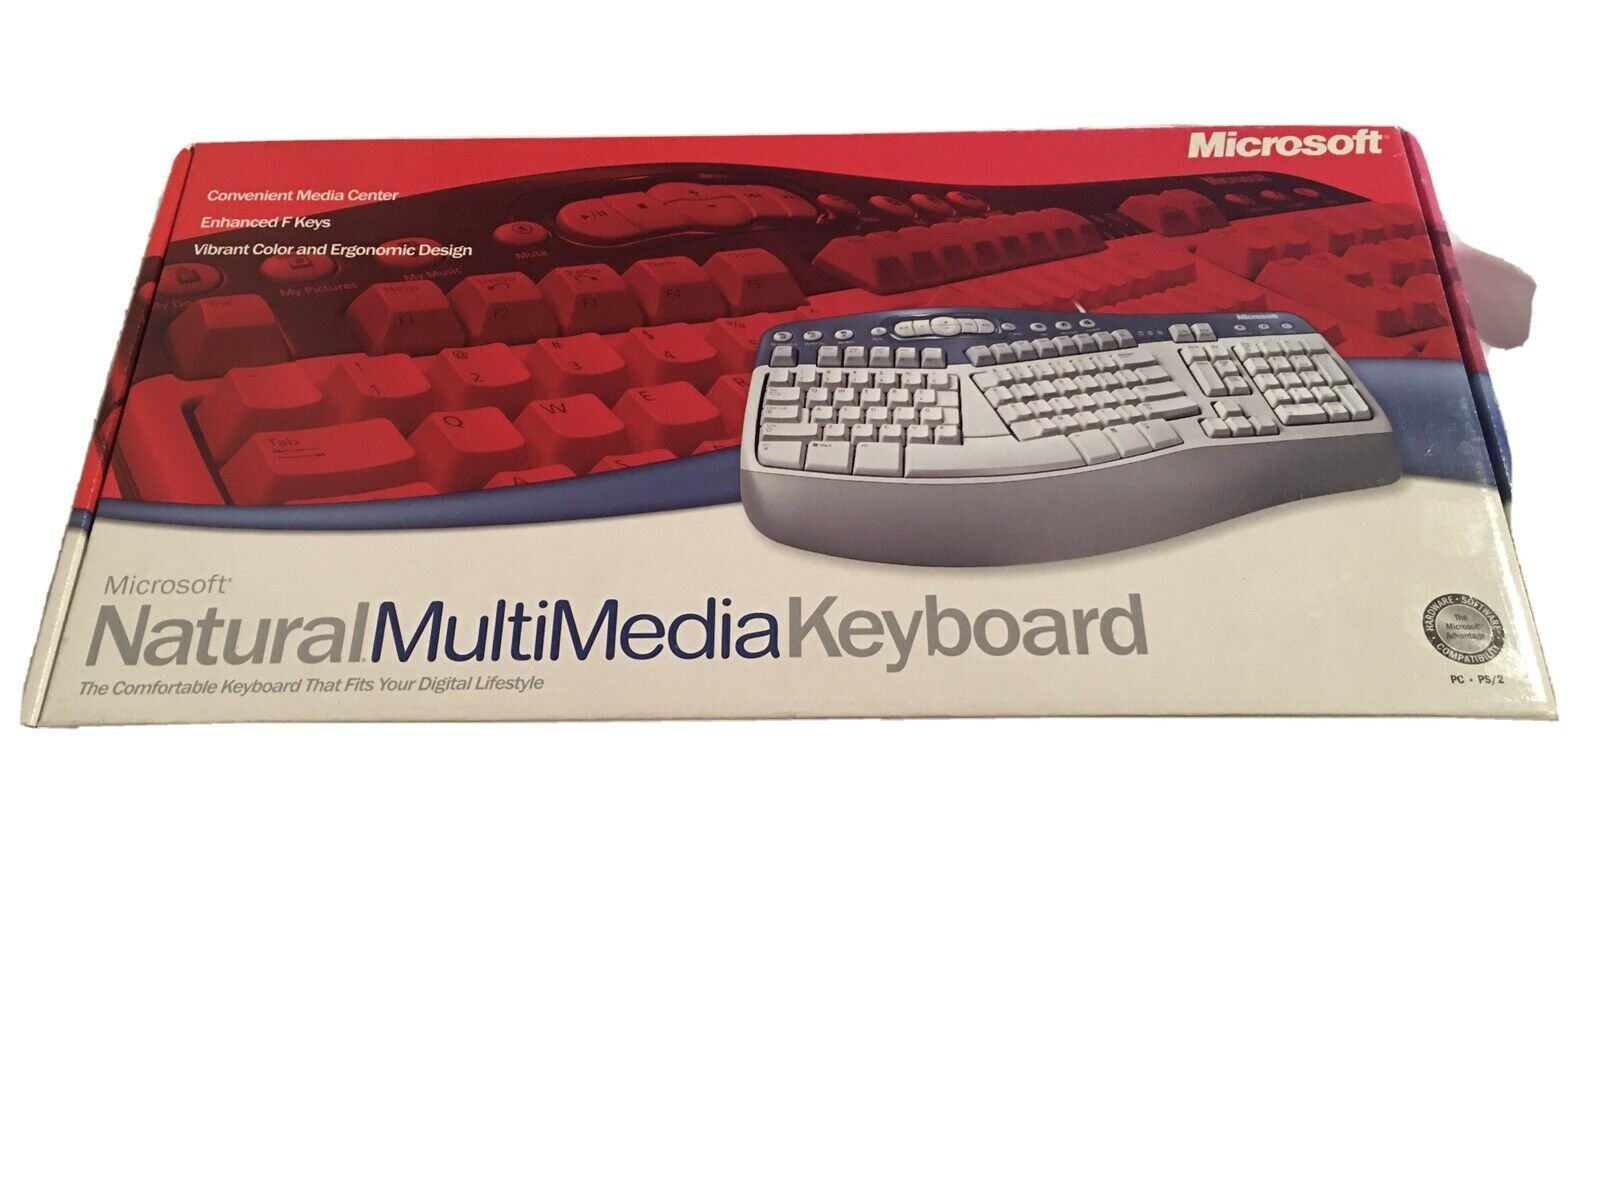 Microsoft Natural Multimedia Keyboard 1.0A PS2 Ergonomic Blue/White. Buy it now for 35.00